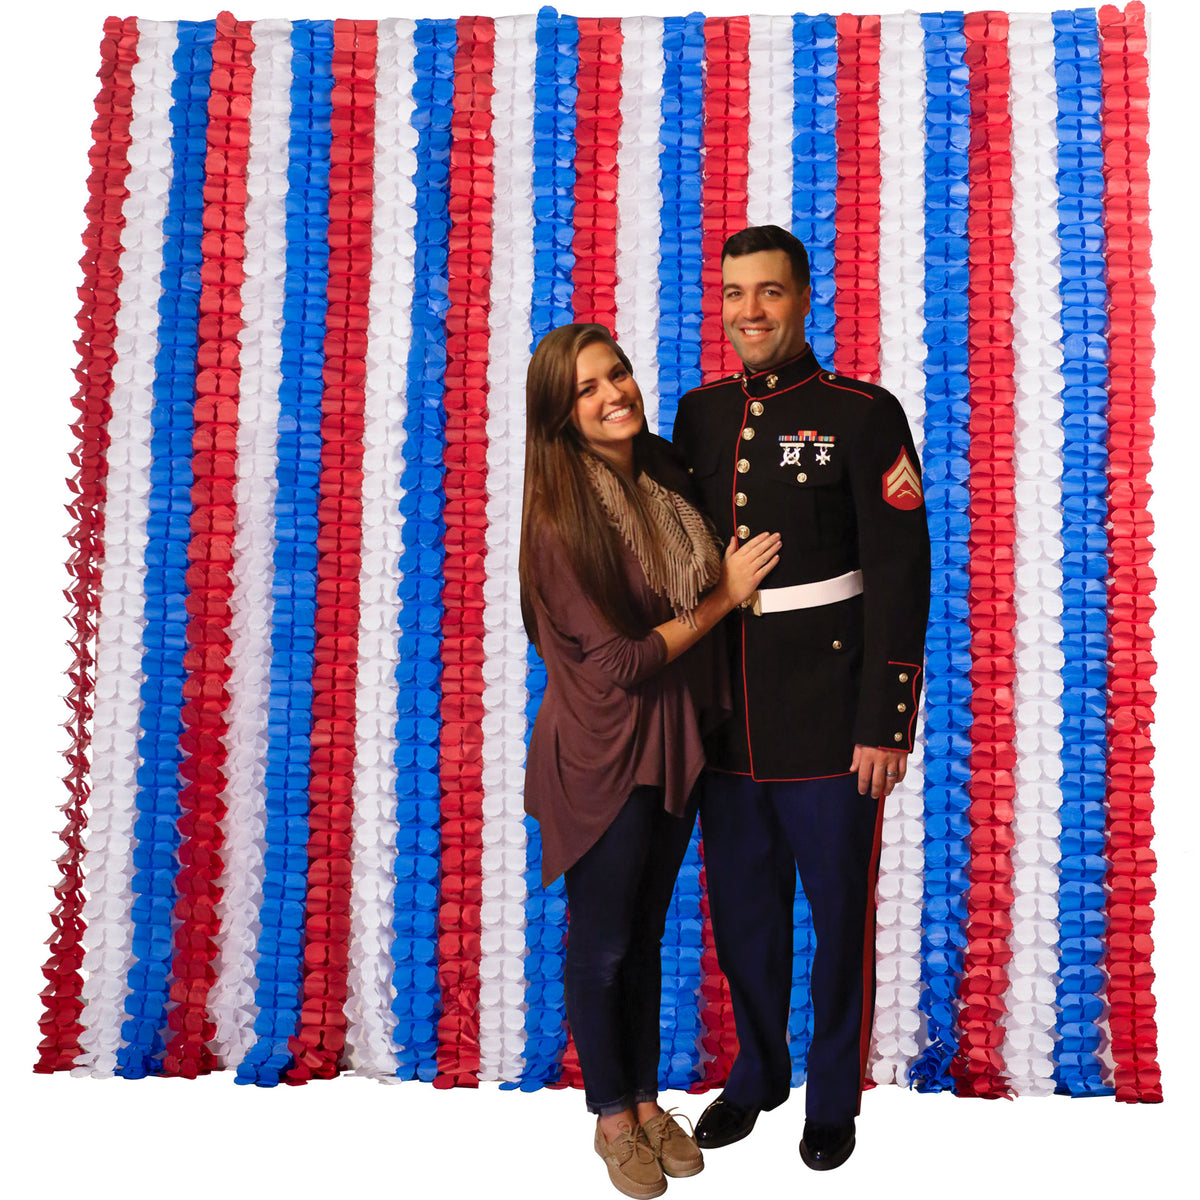 8 ft. DIY Photo Booth Backdrop Board